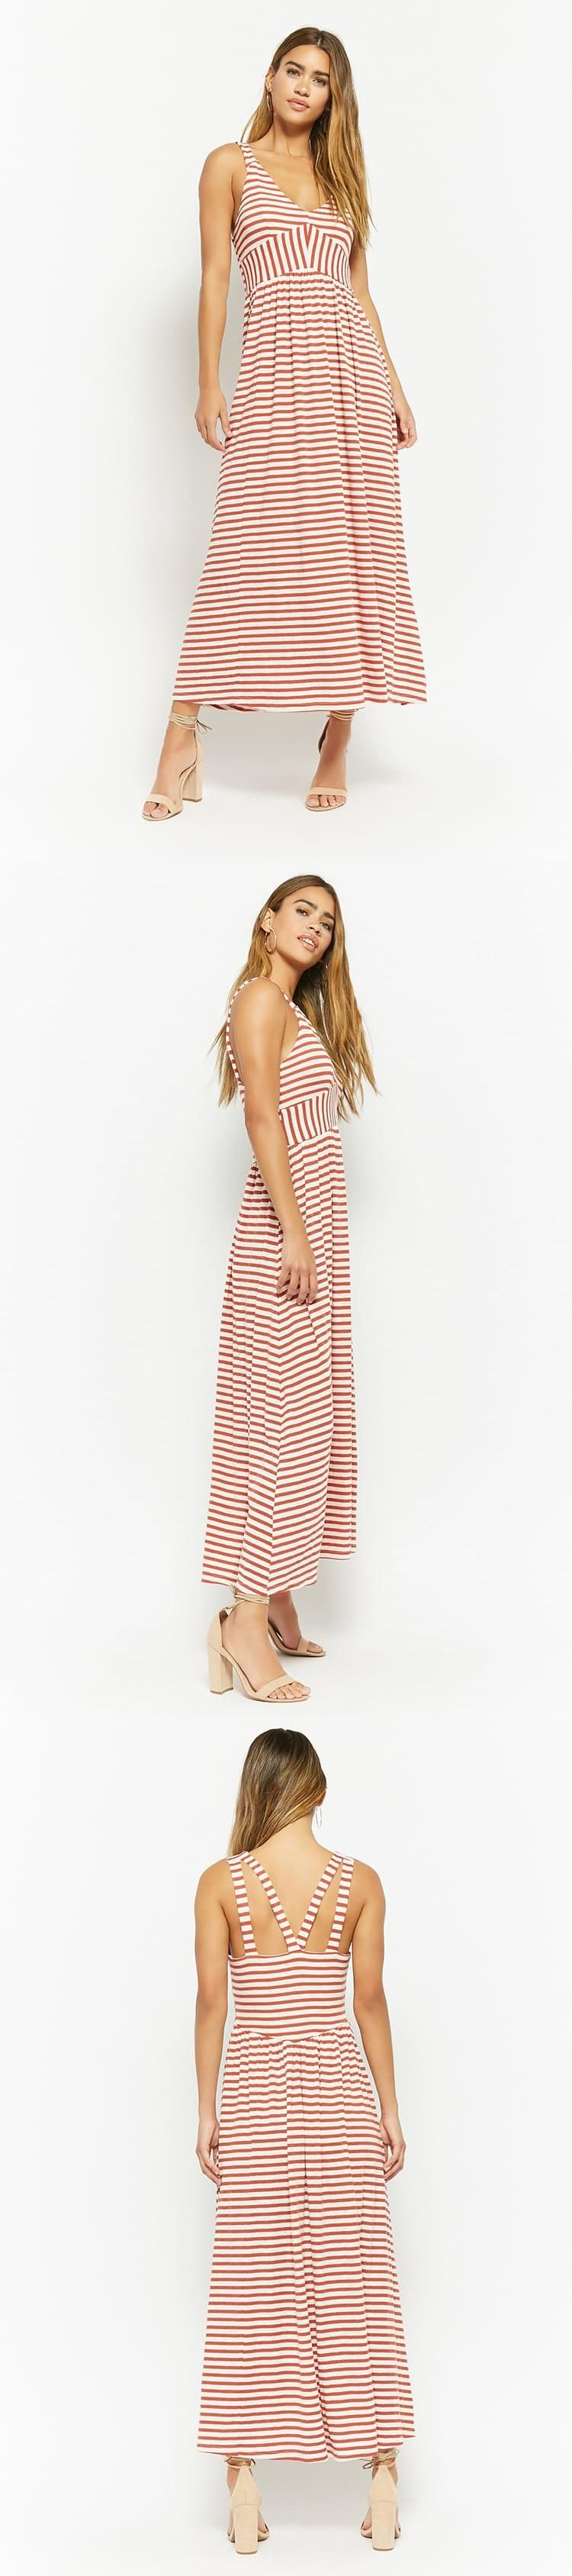 Anm ribbed striped maxi dress usd forever new